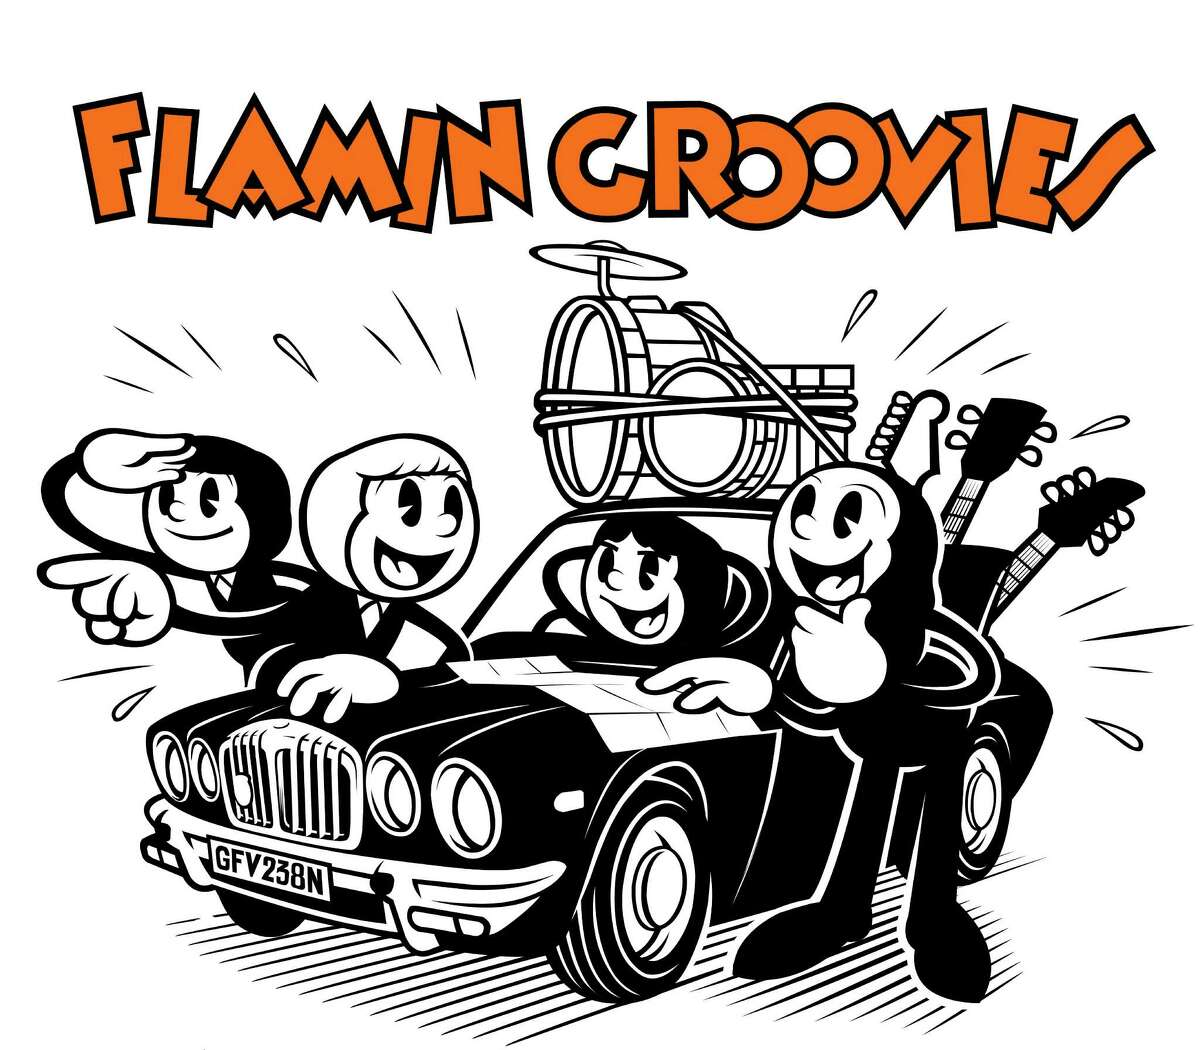 logo for rock band Flamin Groovies